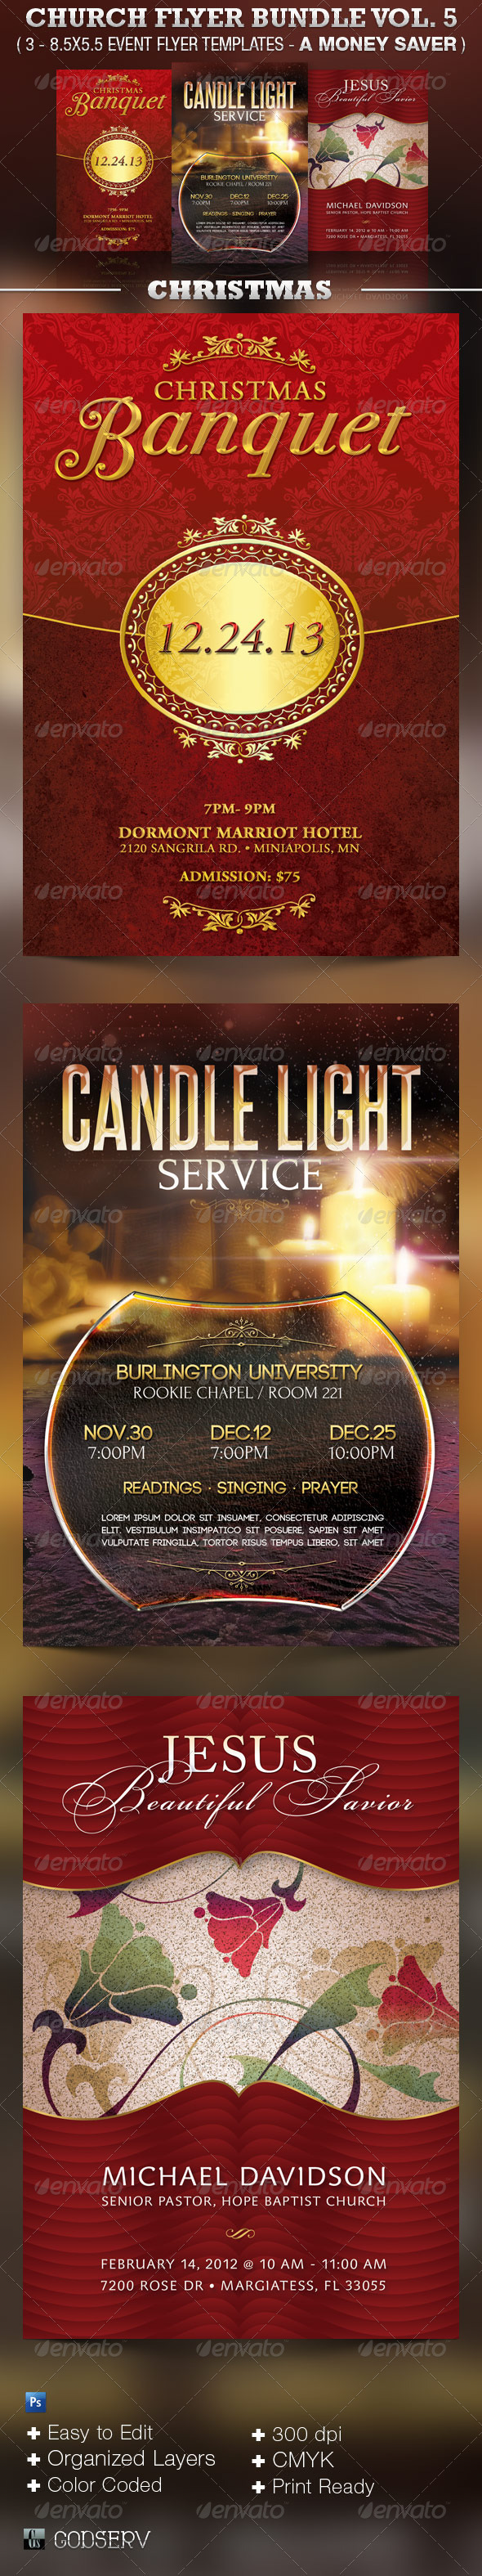 Church Flyer Template Bundle Vol 5 - Christmas - Church Flyers